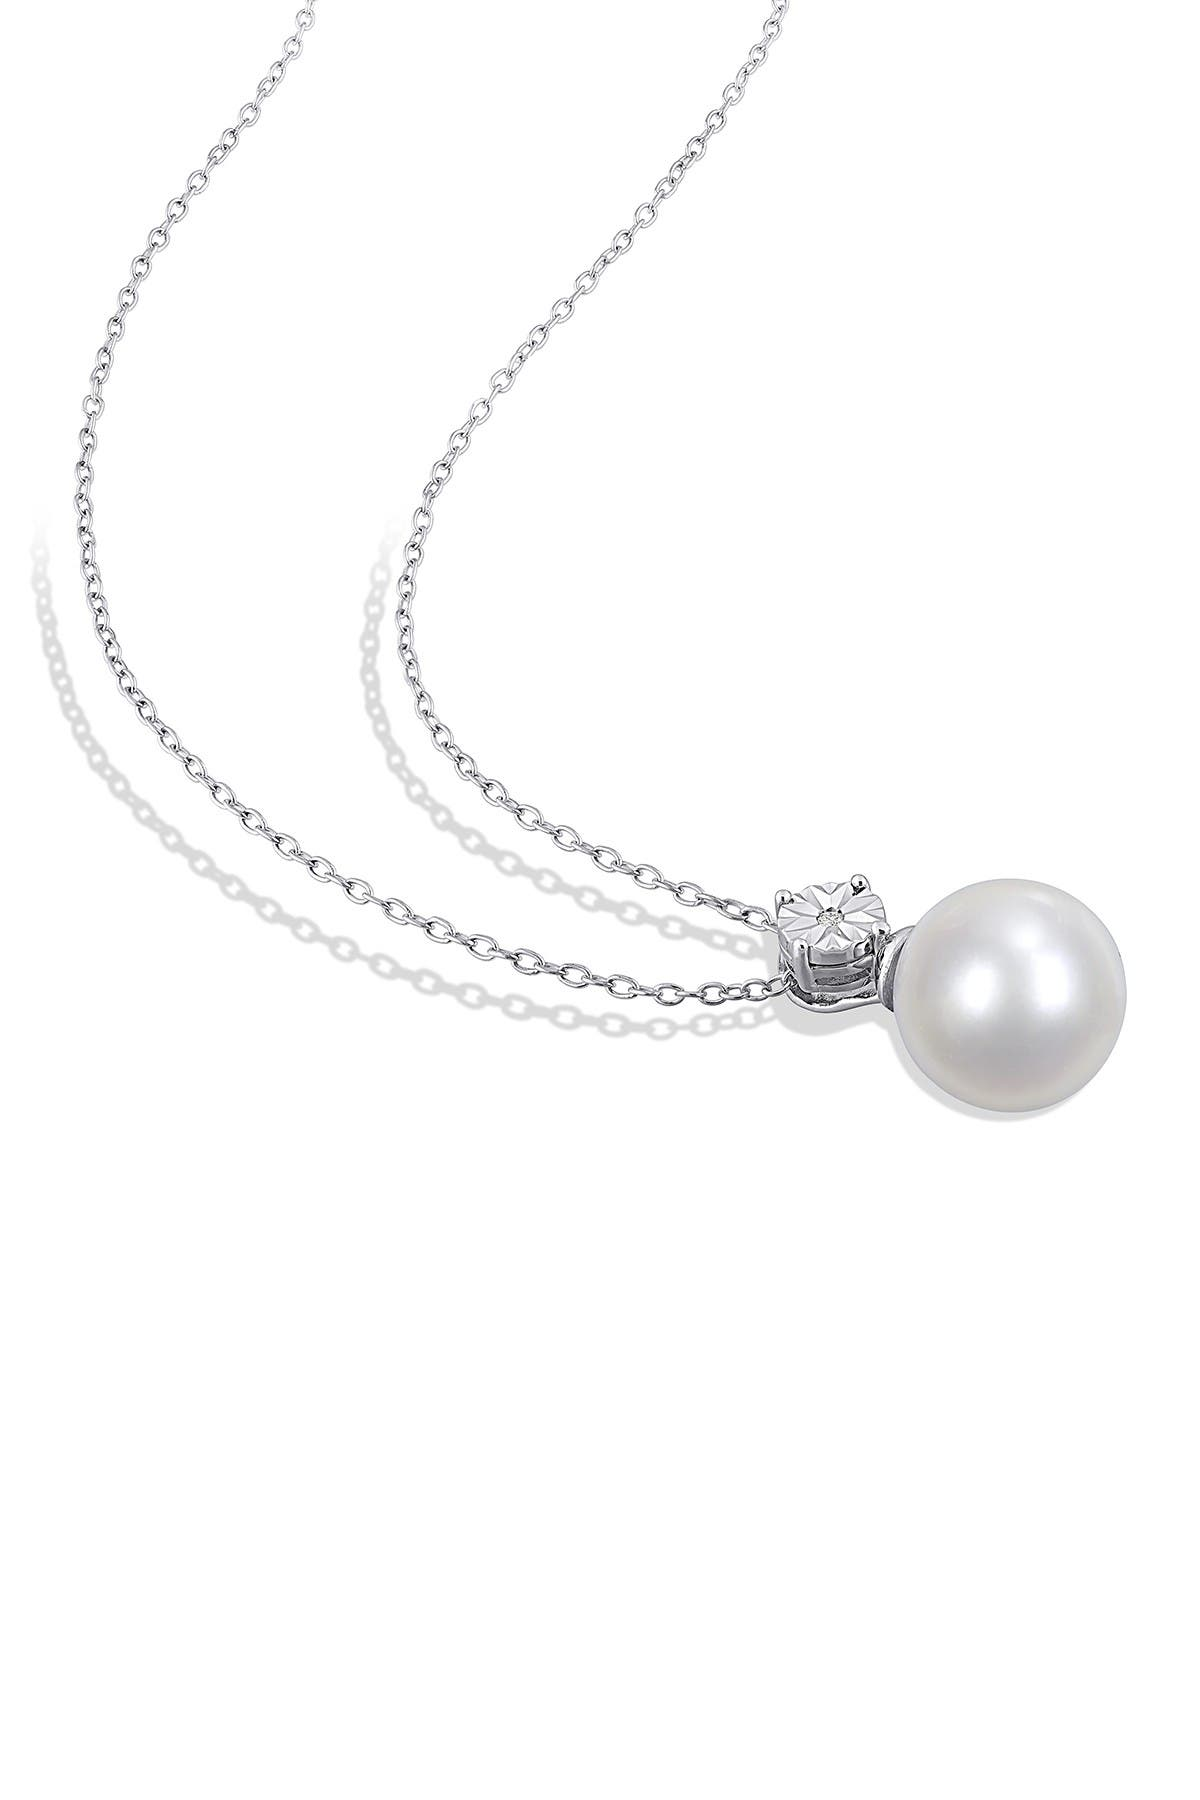 Image of Delmar Sterling Silver 11-12mm Freshwater Pearl & Diamond Accent Pendant Necklace